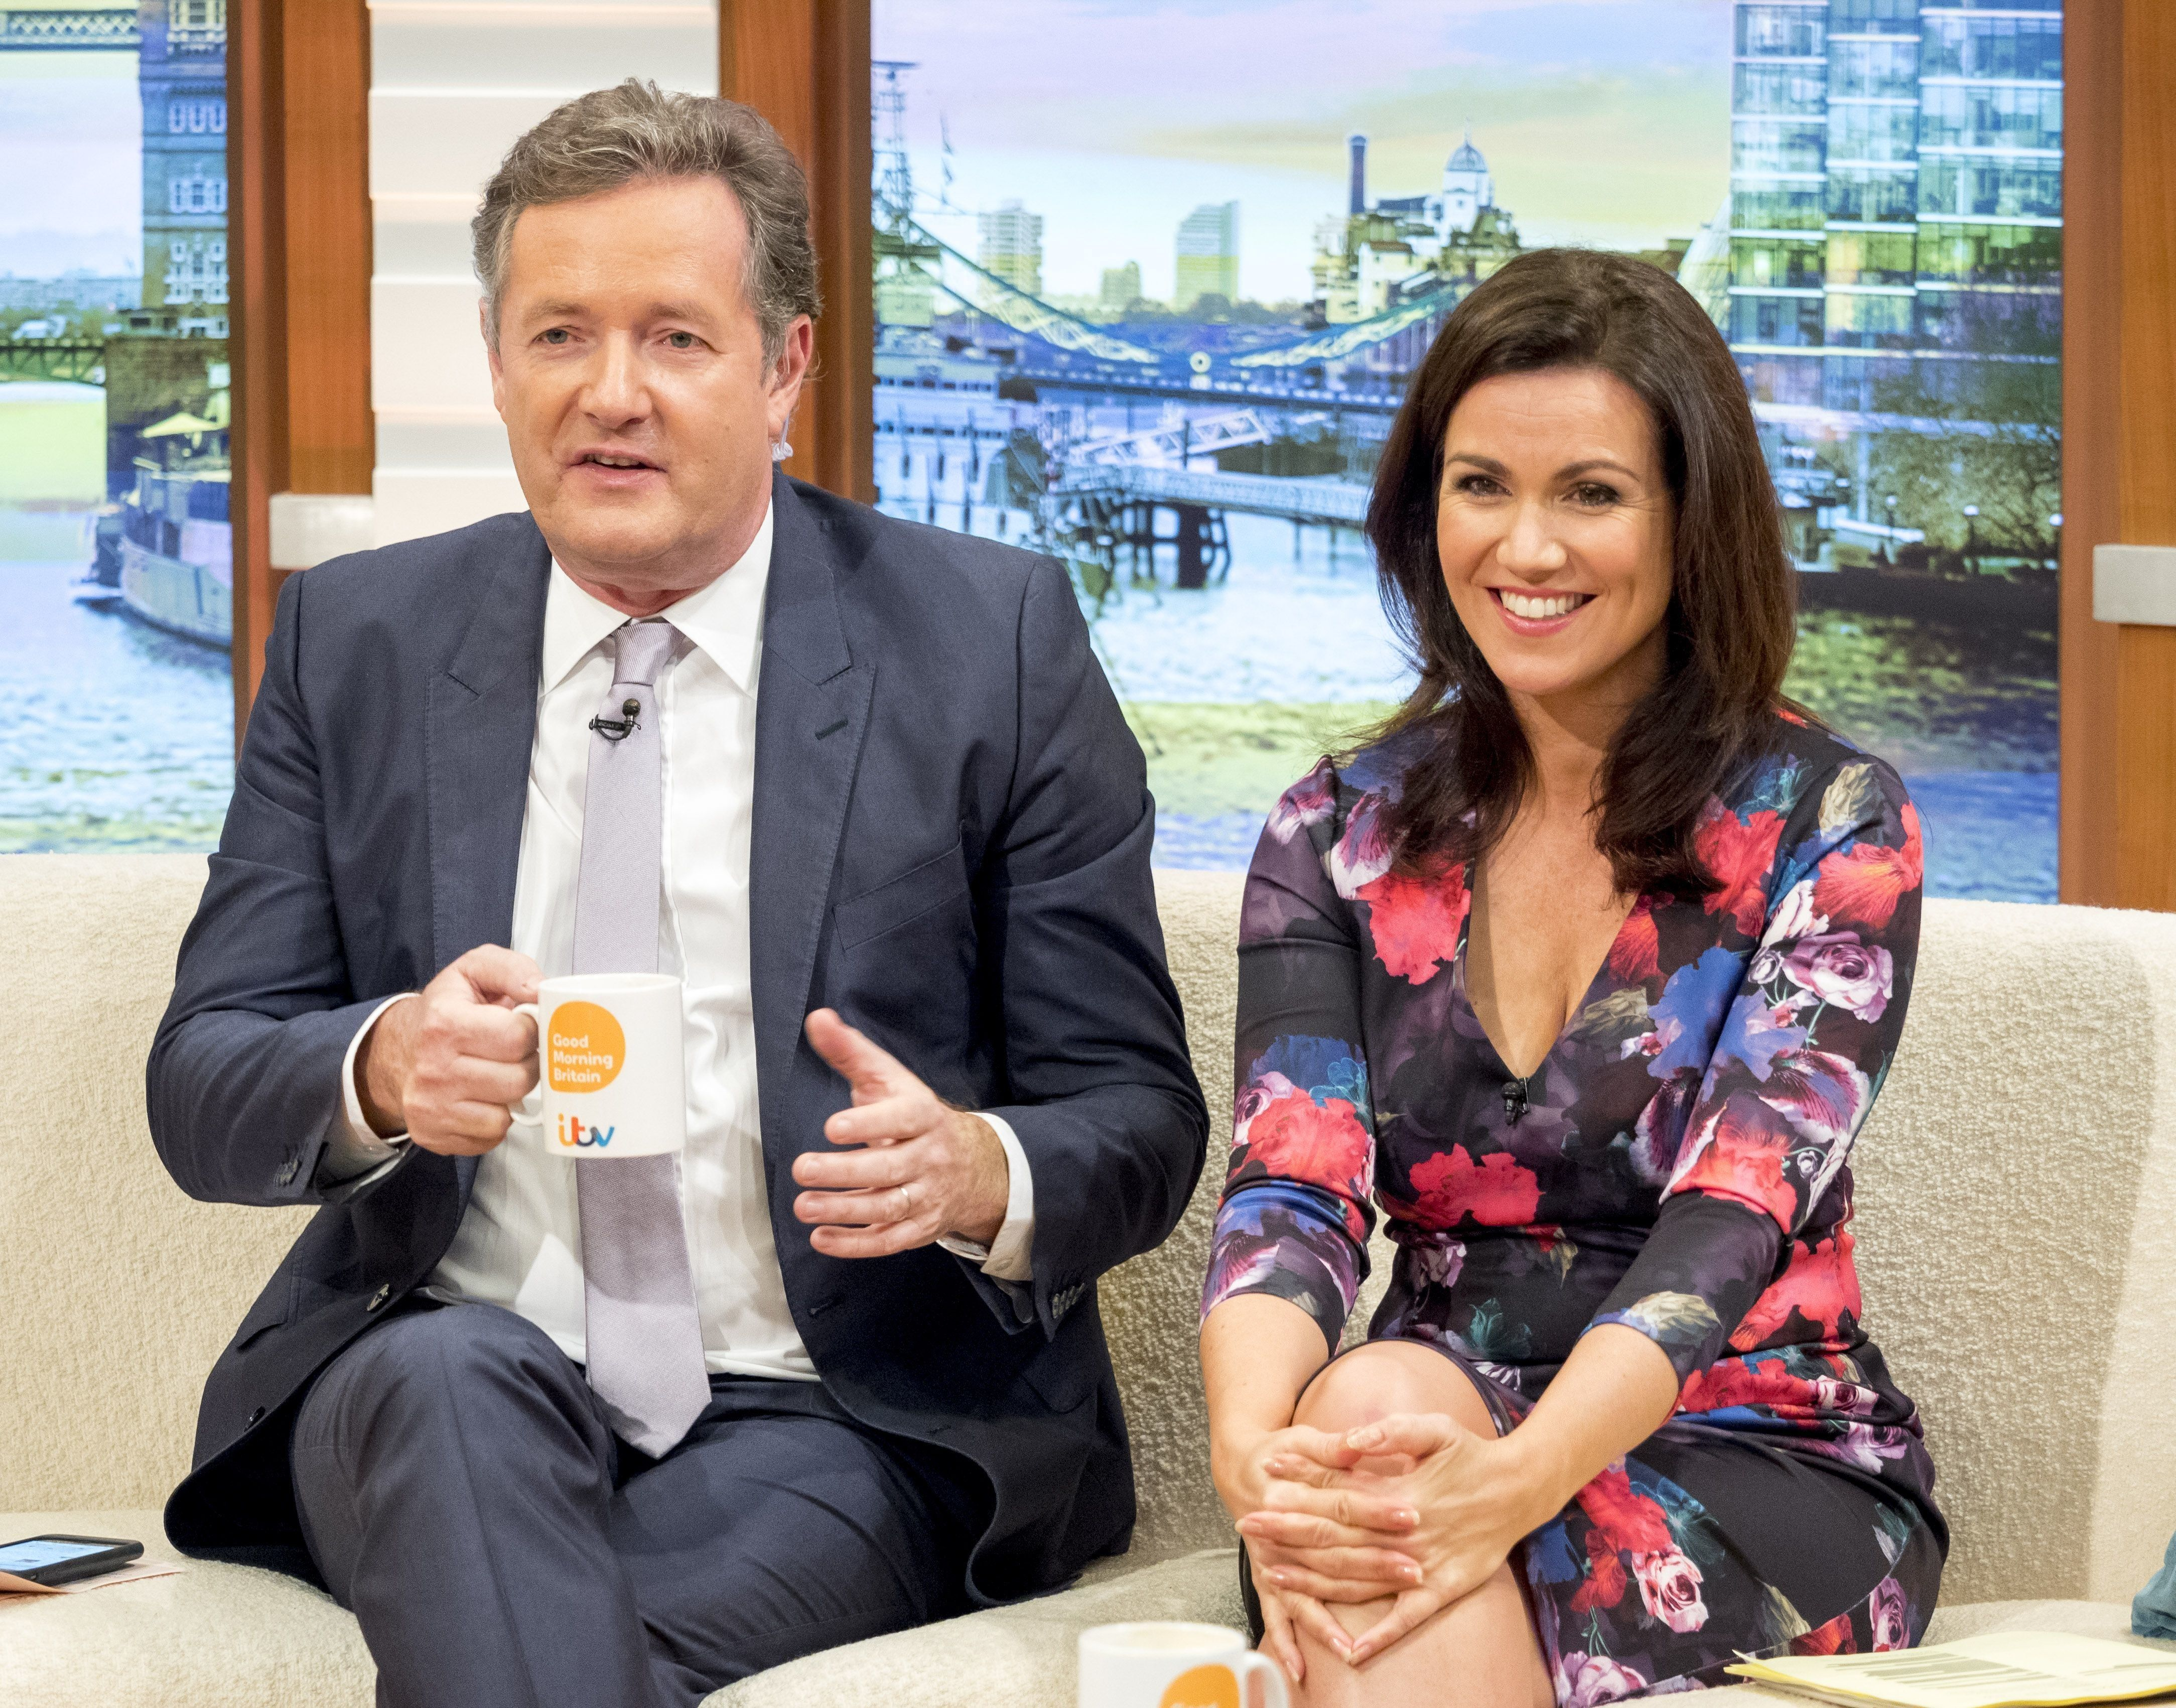 Piers Morgan and Susanna Reid on 'Good Morning